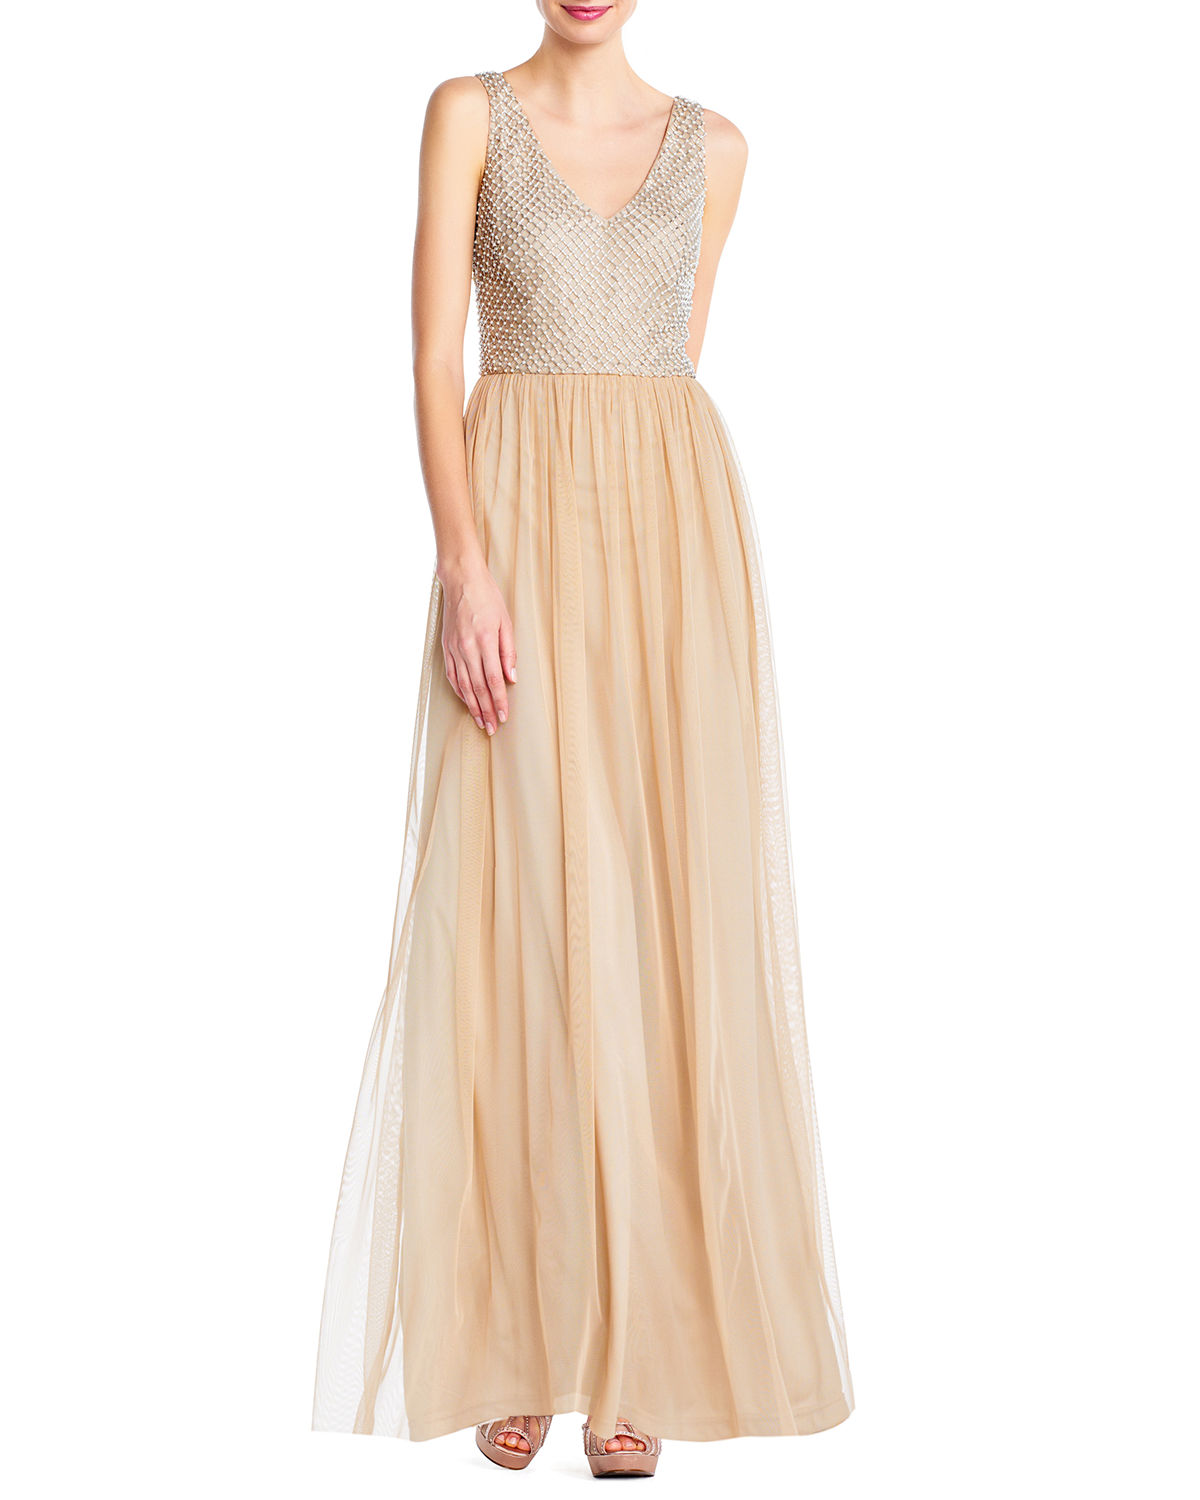 Beading-Netted Bodice Gown